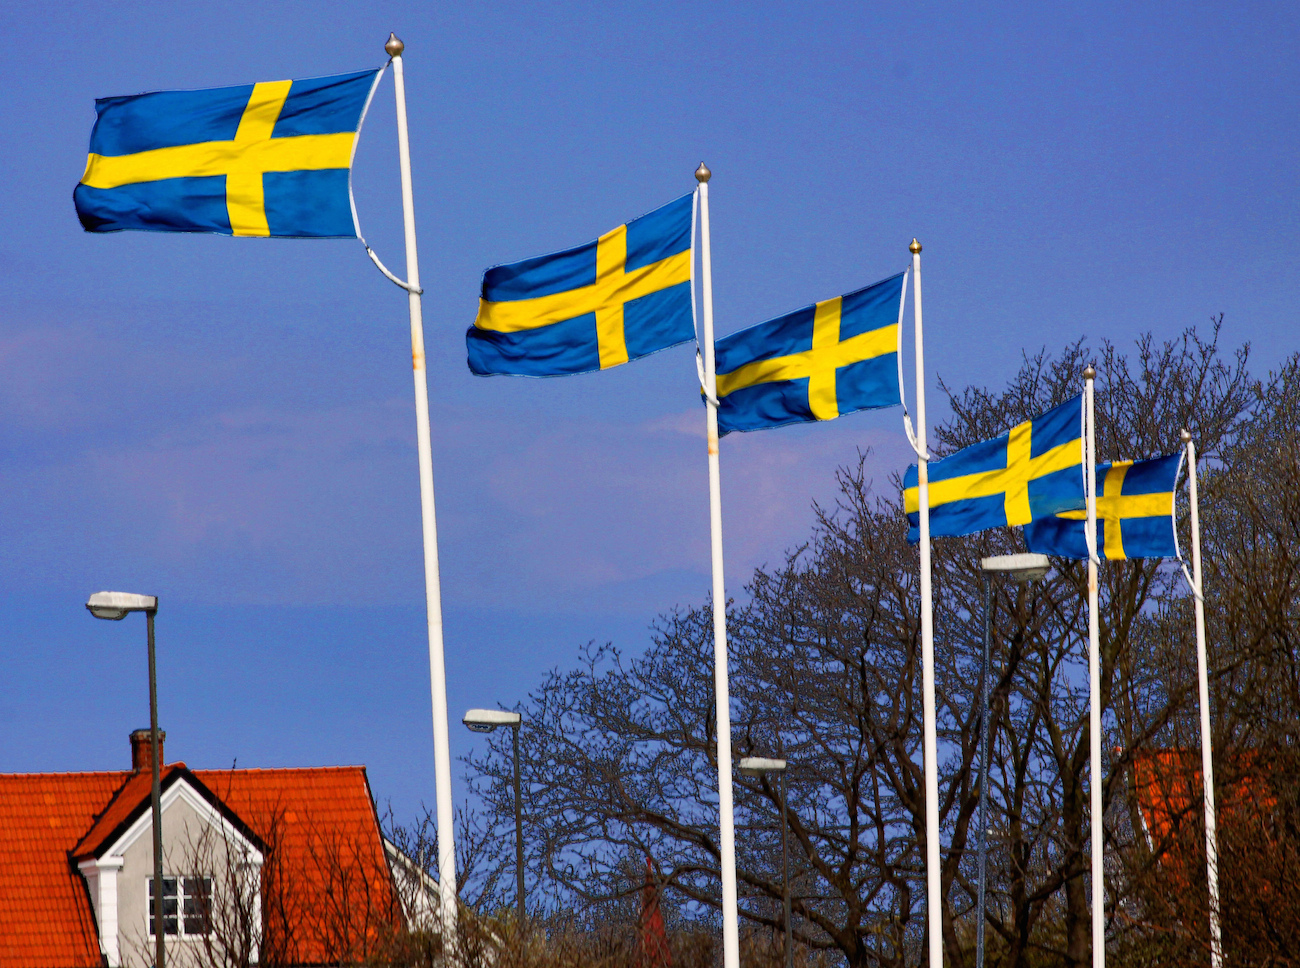 Sweden's Government Forced to Return $1.5M in Bitcoin to Drug Dealer: Report